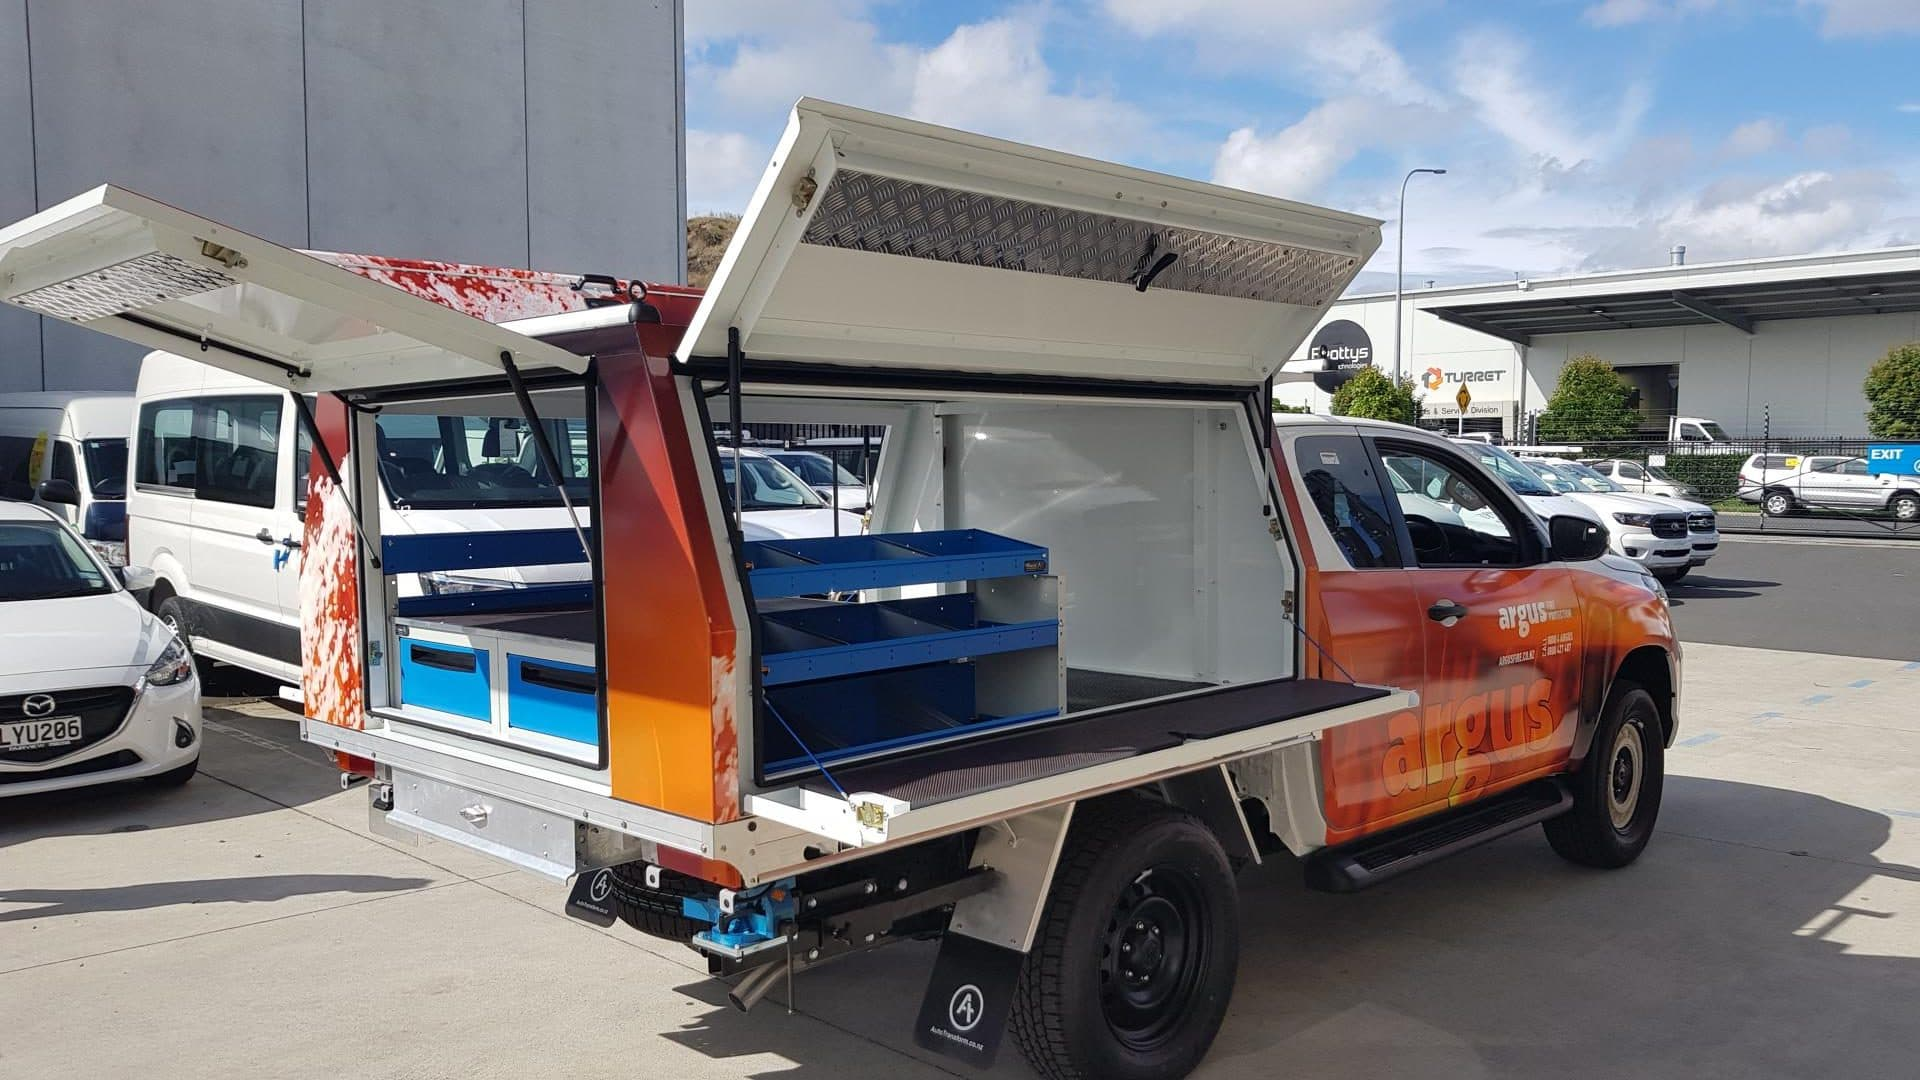 Ute fitout for fire services